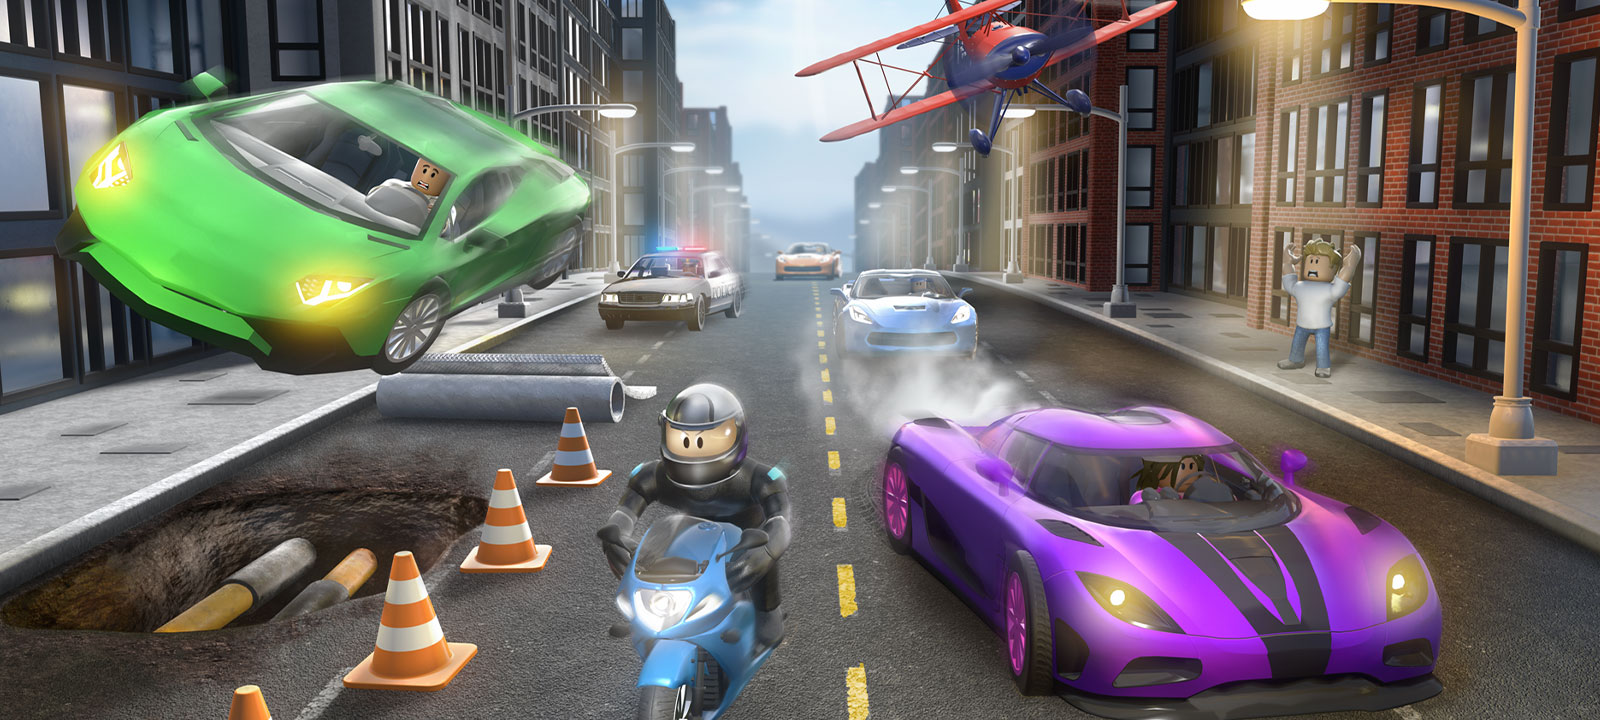 Character from Roblox Vehicle Simulator on a motorcycle getting chased by other vehicles on a city street